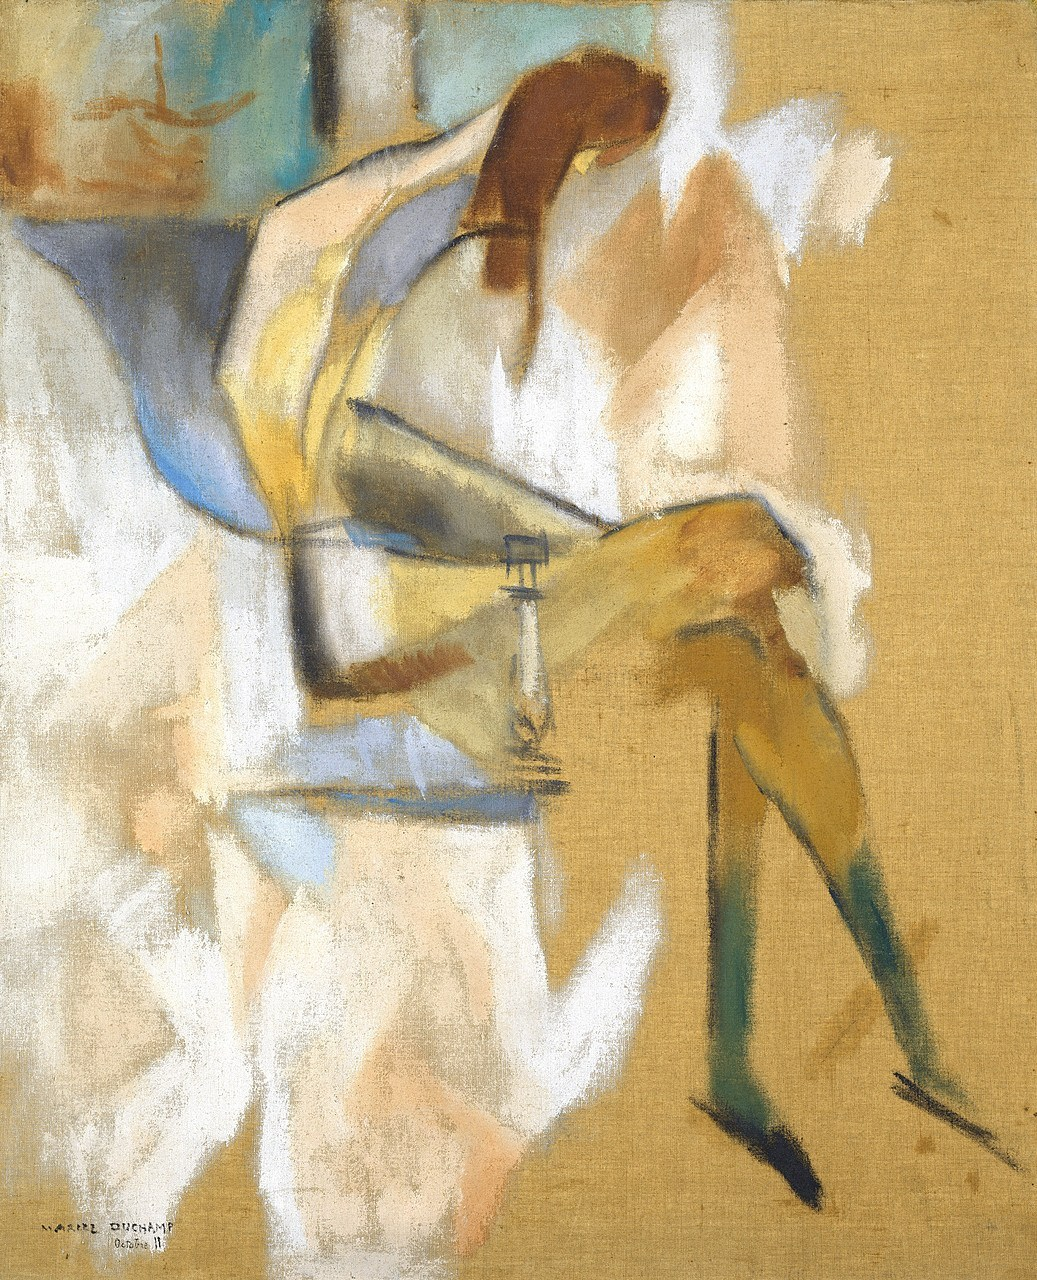 Marcel Duchamp (1887-1968), Apropos of Little Sister, 1911, oil on canvas